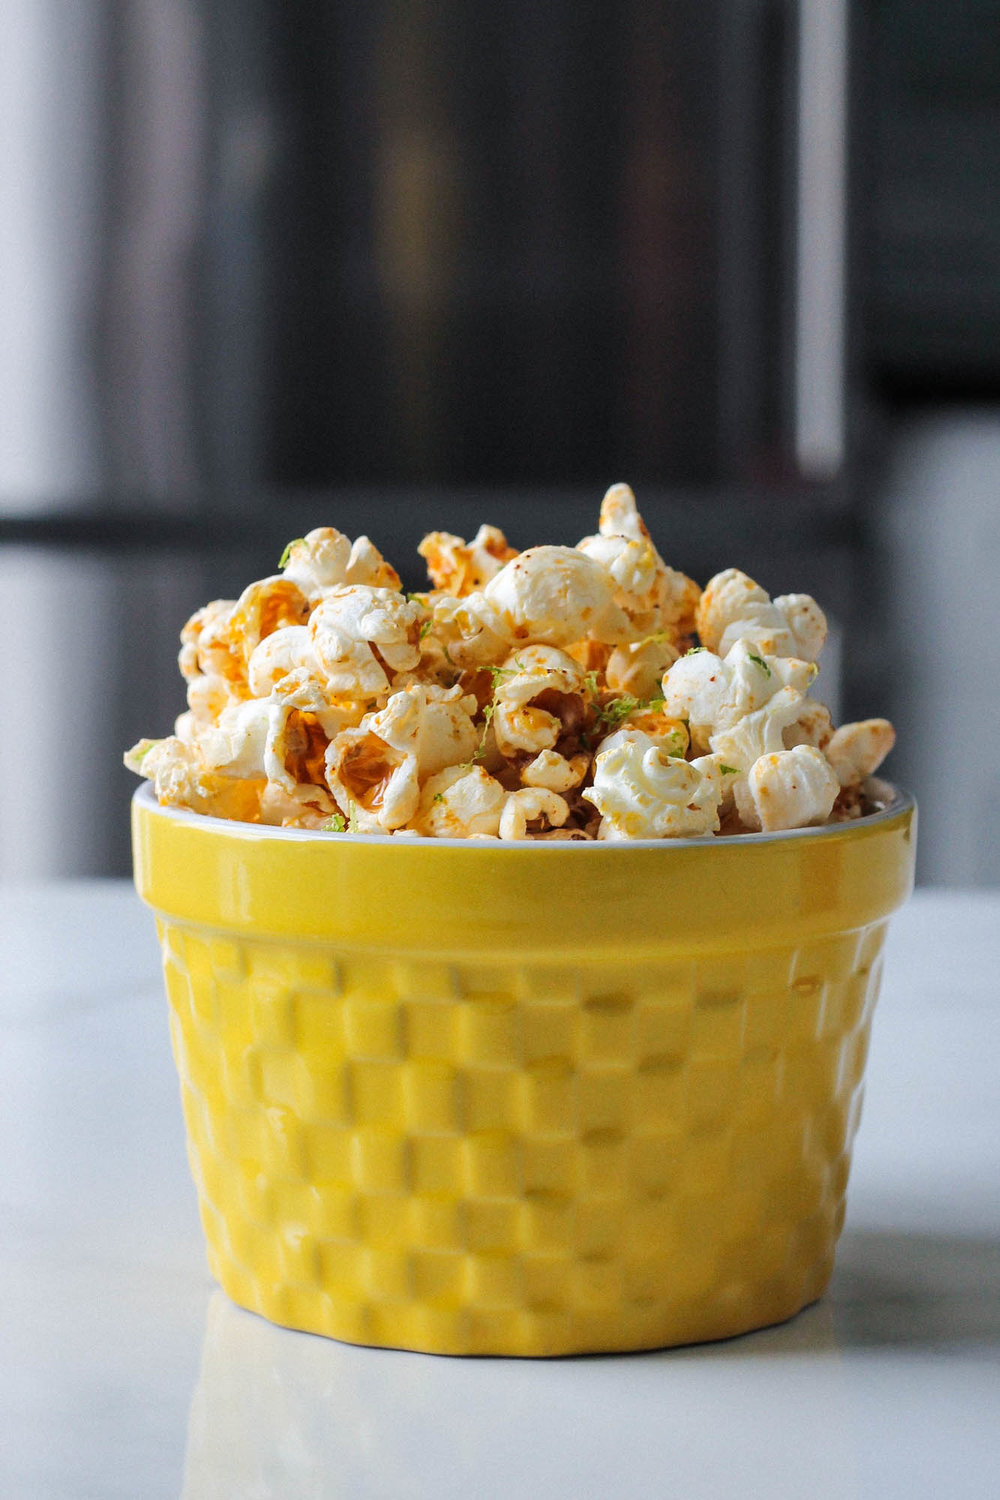 Mexican Spiced Lime Popcorn || Popcorn Three Ways (Vegan) || Healthy + delicious recipes for 3 popcorn flavours without butter– classic, mexican spiced lime, and ras el hanout with salted maple. All plant based, dairy free, gluten free and easy to make! || www.creamandhoney.ca